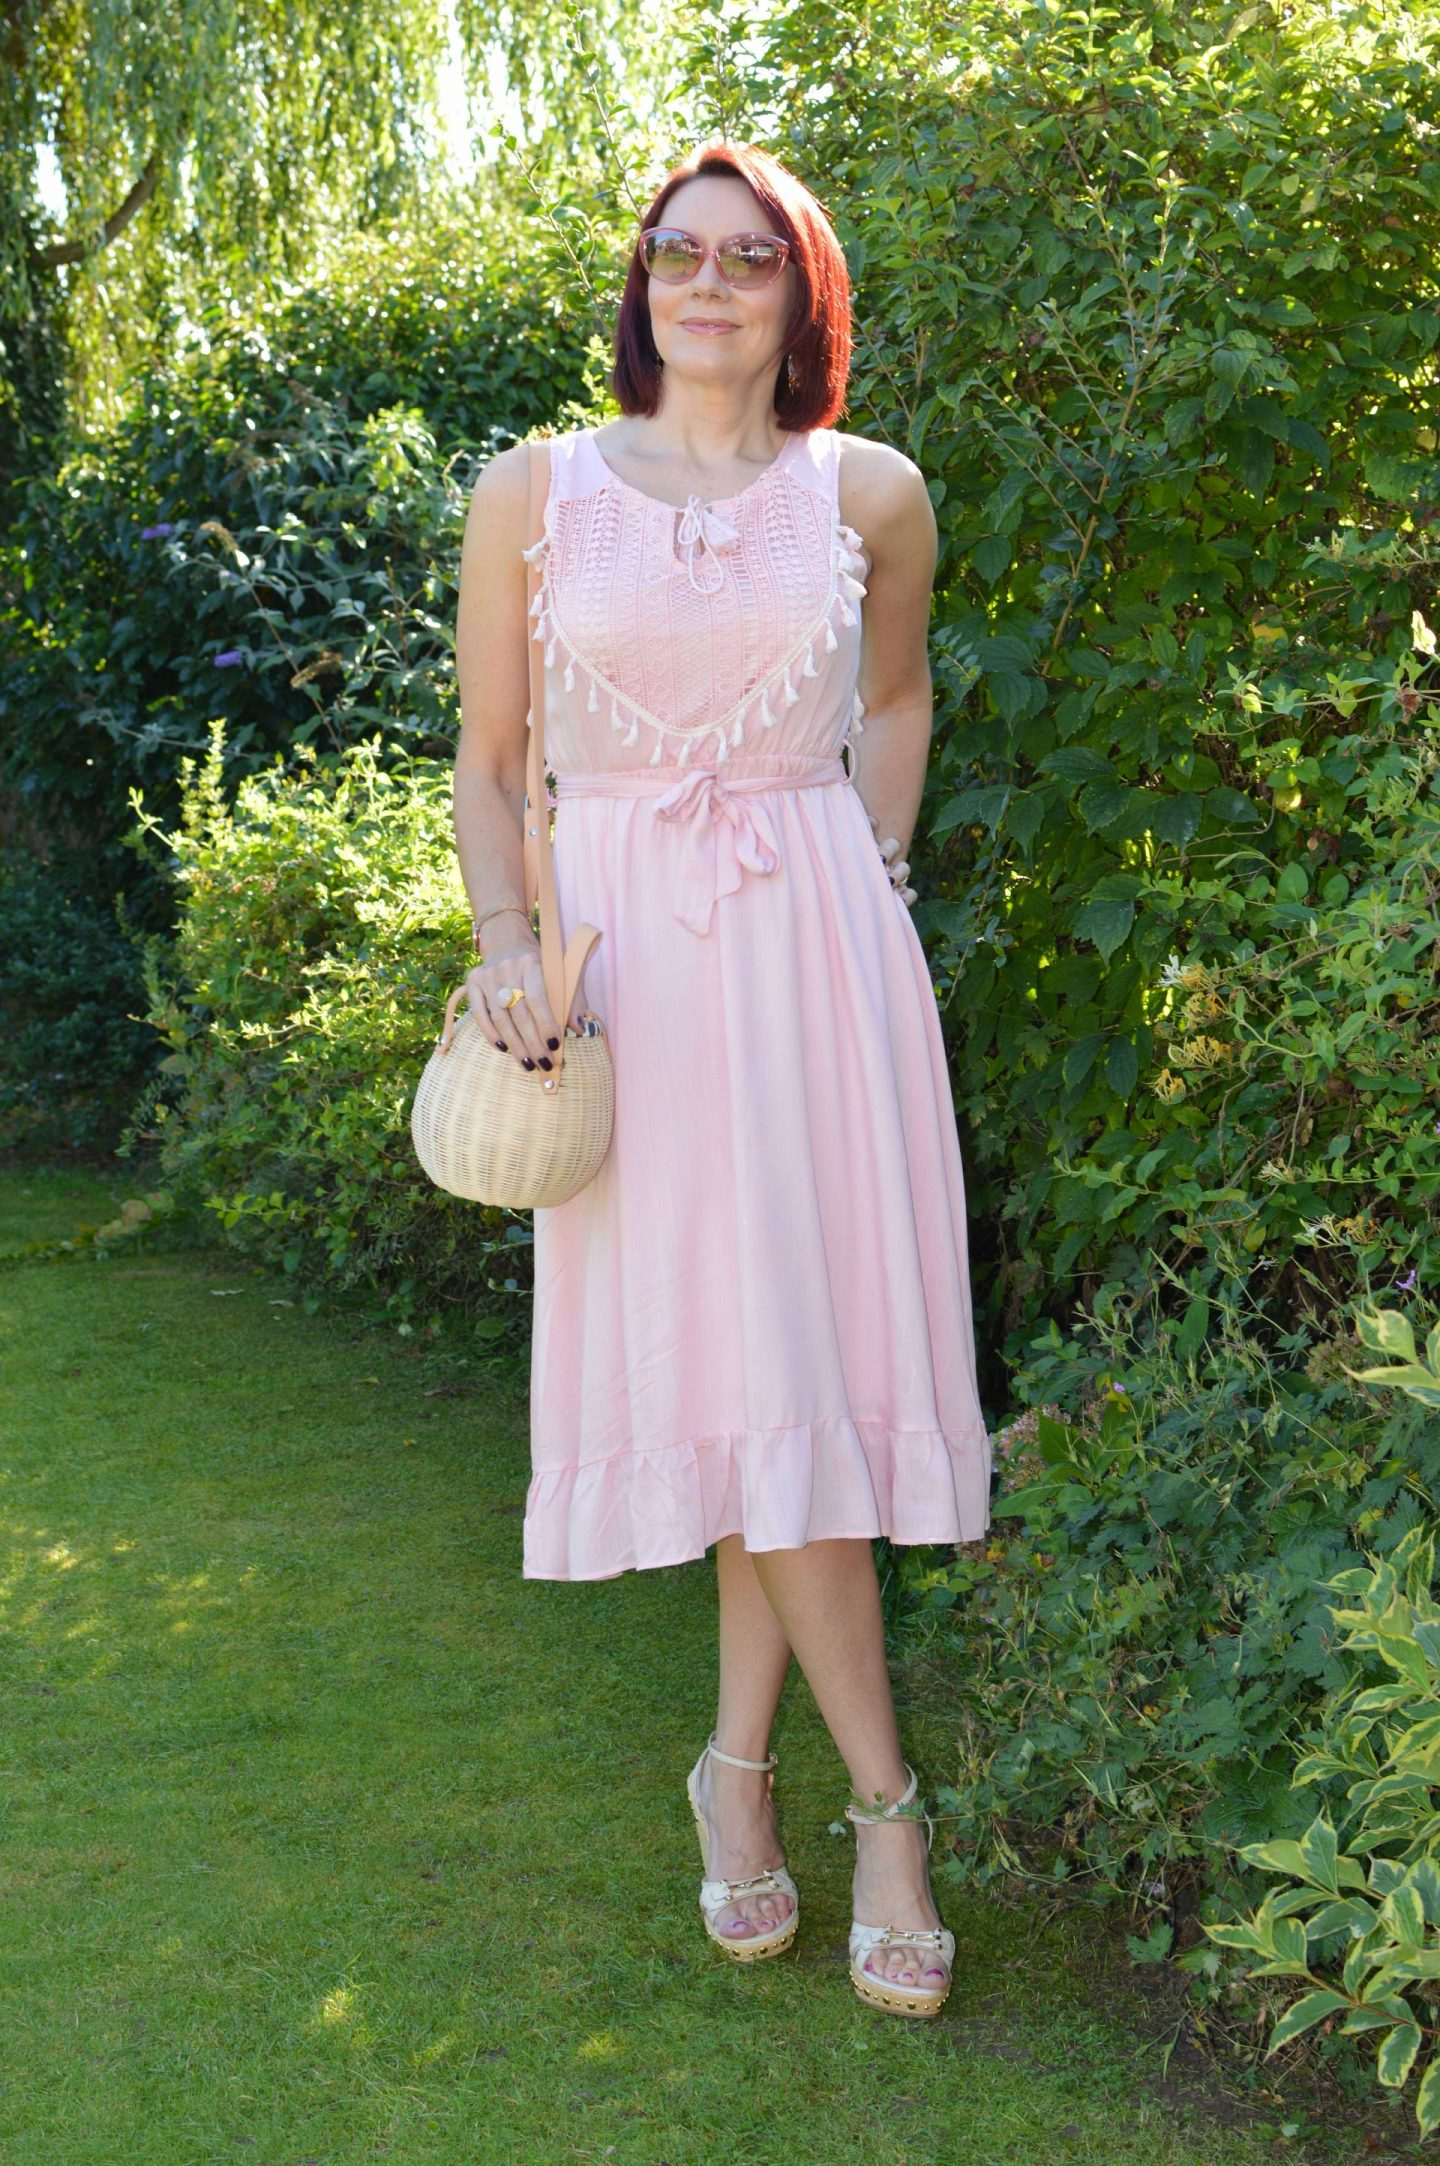 Blush Pink Cotton Sundress